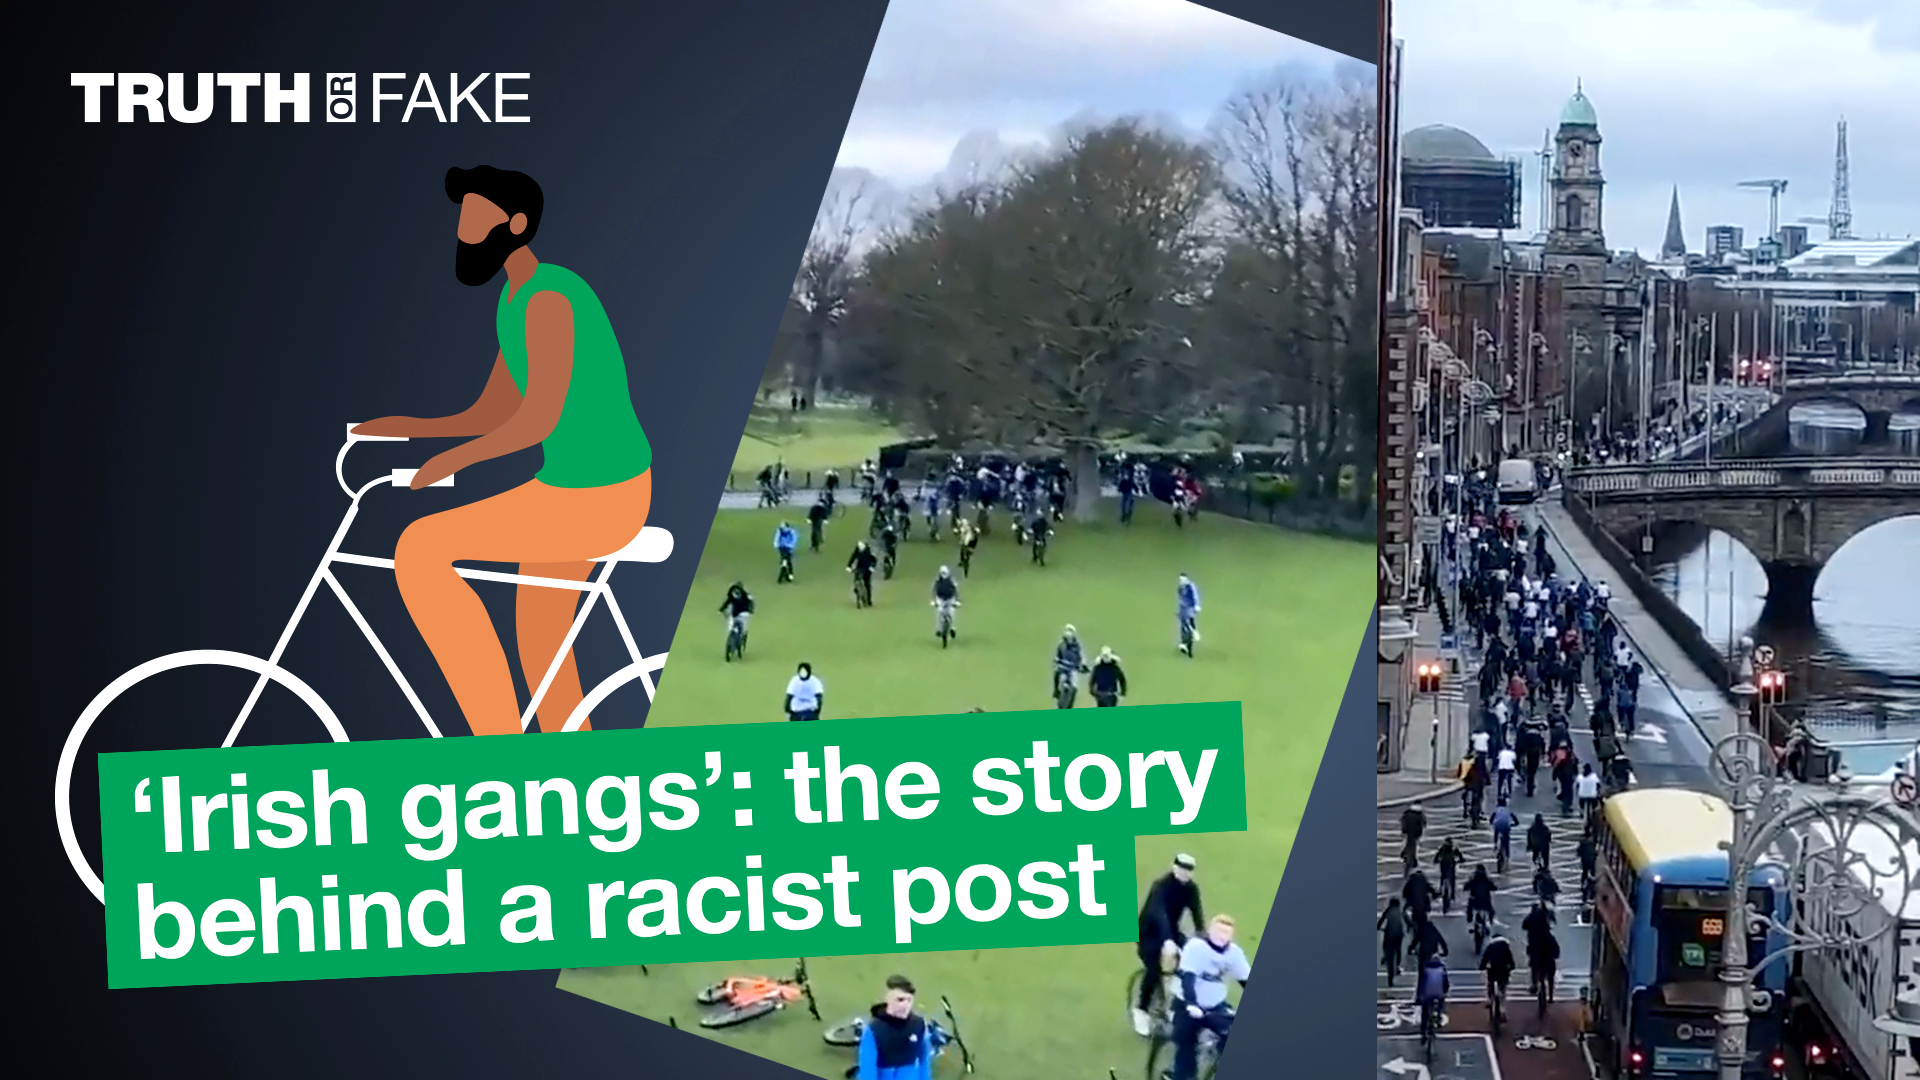 'Irish gangs': the story behind a racist post